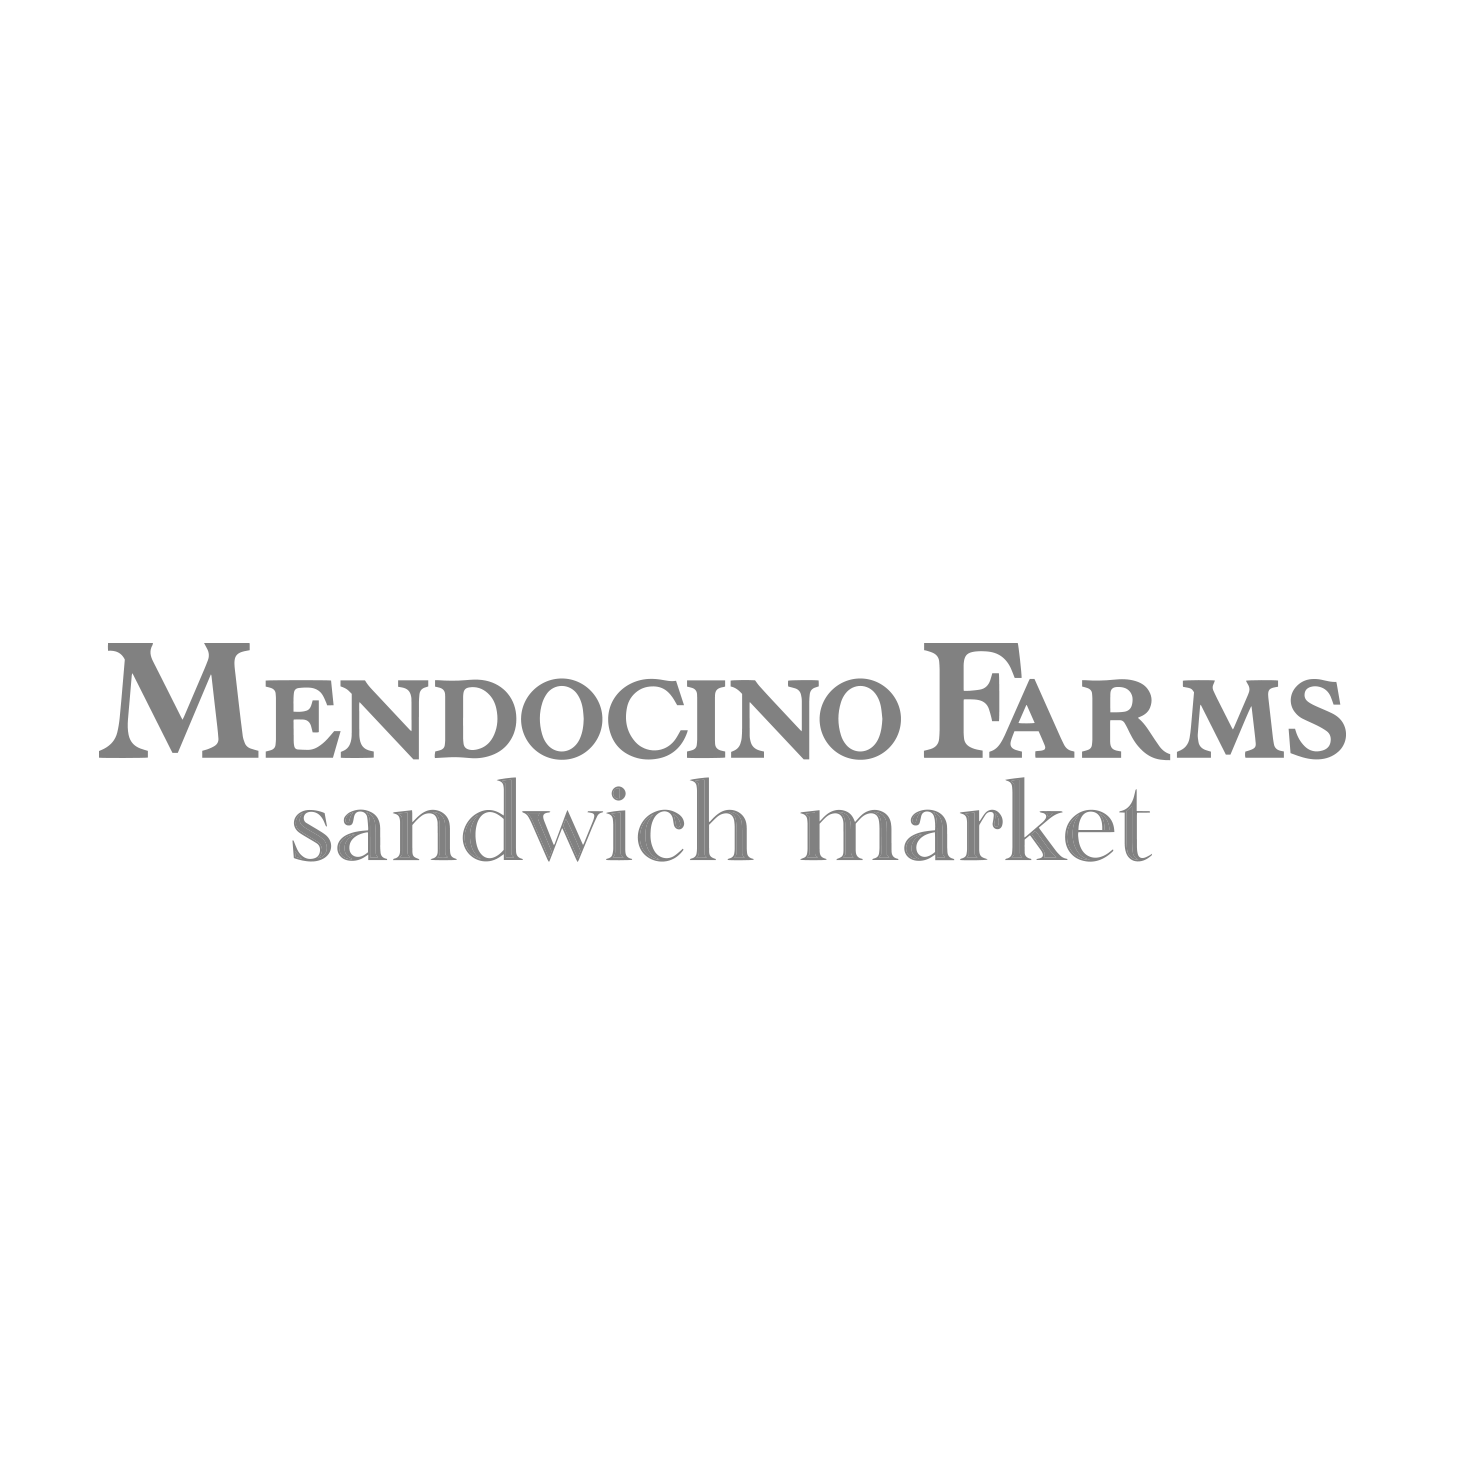 Mendocino Farms_001.png